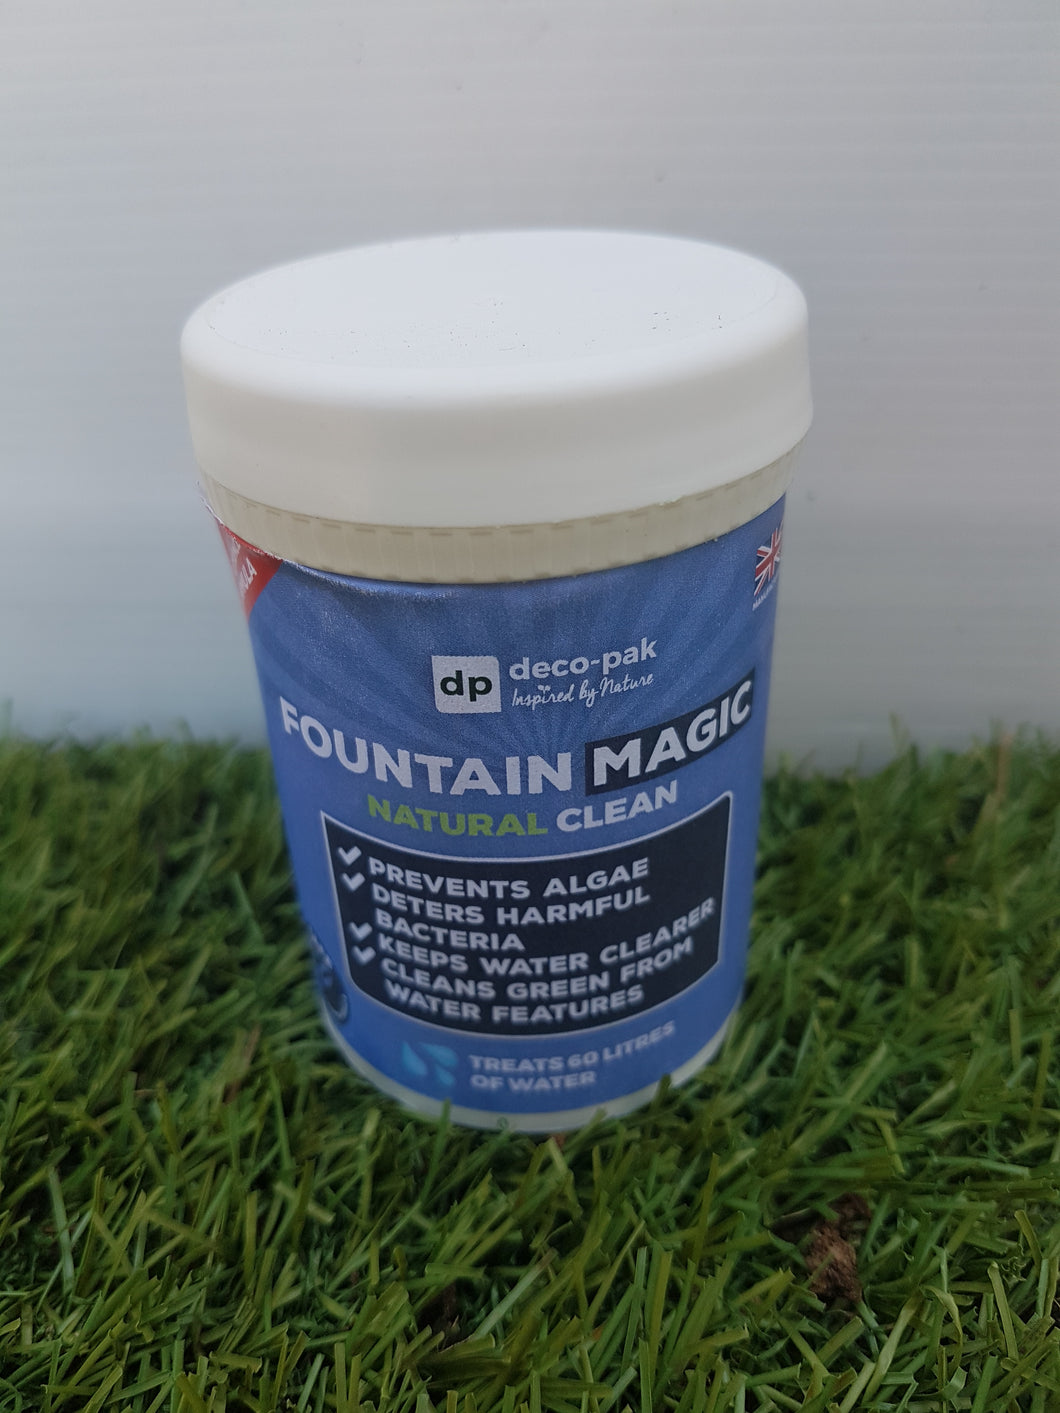 Fountain Magic Natural Clean (water feature cleaner) 30ml